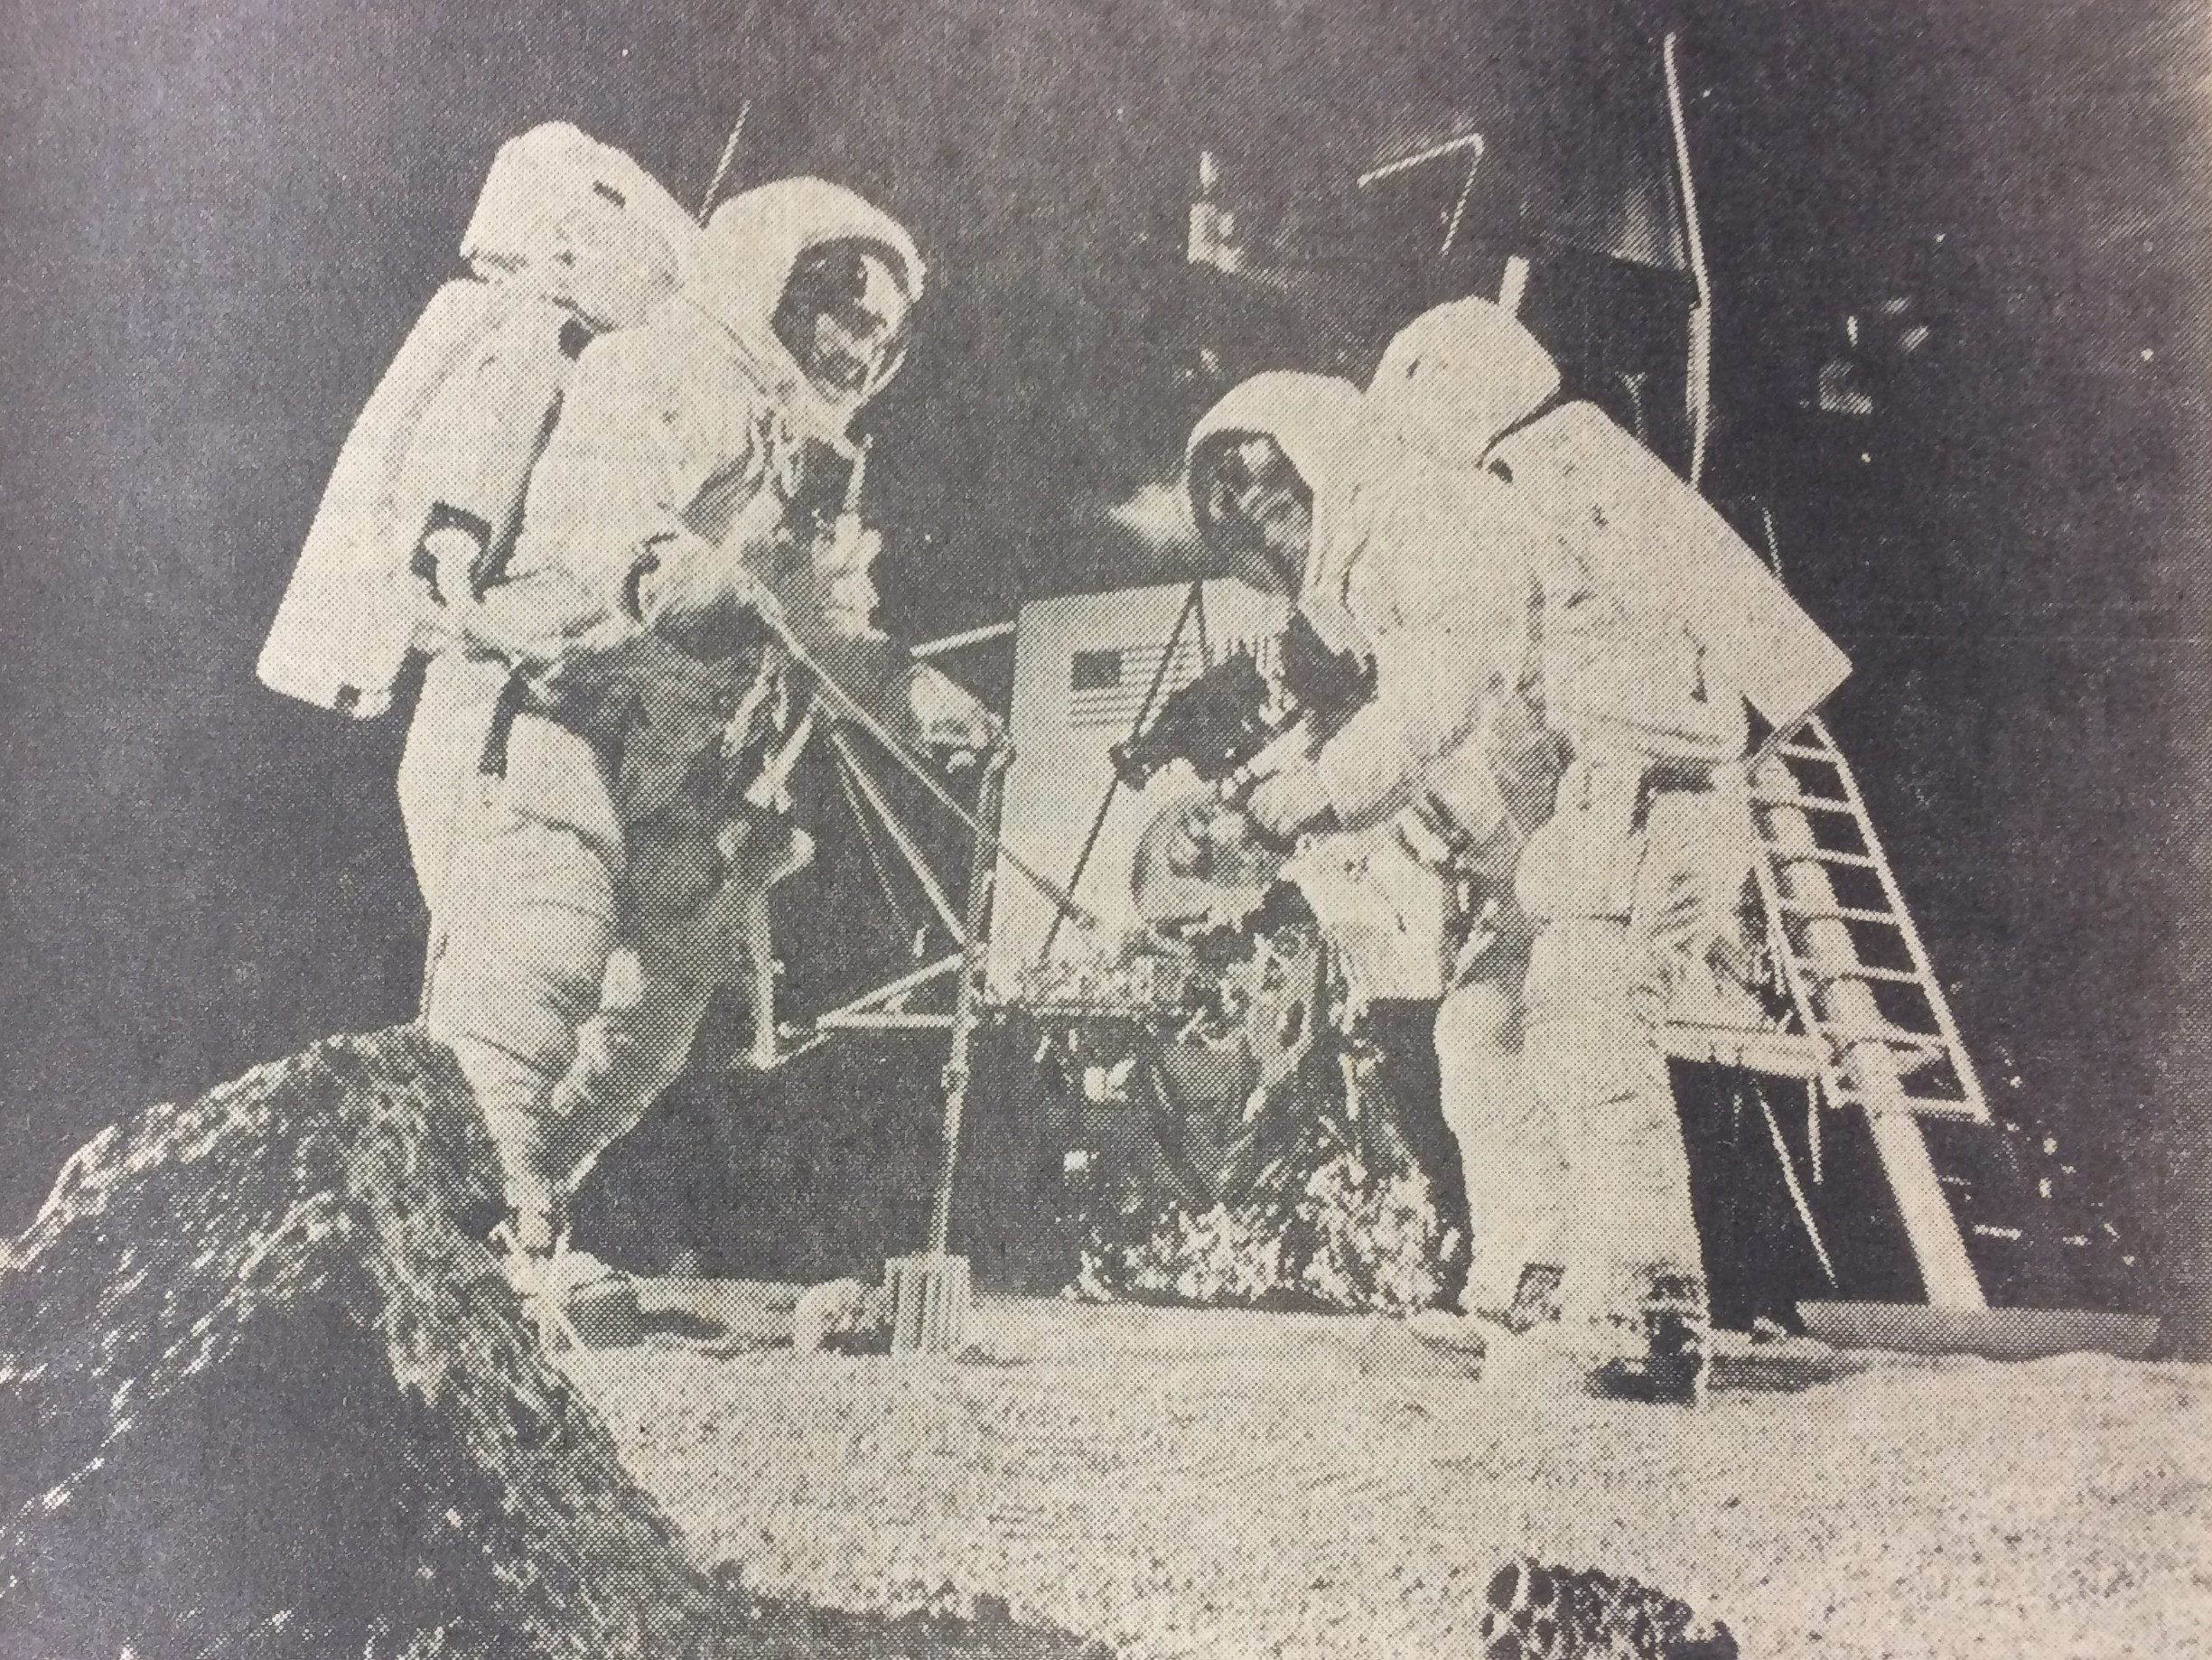 "Men of the Eagle are shown in a simulated lunar surface walk at Houston's Manned Spacecraft Center. Last Sunday night, astronauts Neil Armstrong and Edwin E. Aldrin made it a reality. At 10:56 p.m., Armstrong became the first human to step onto the moon's surface in the 2 million year history of man. His words — ""That's one small step for man, one giant leap for mankind."""